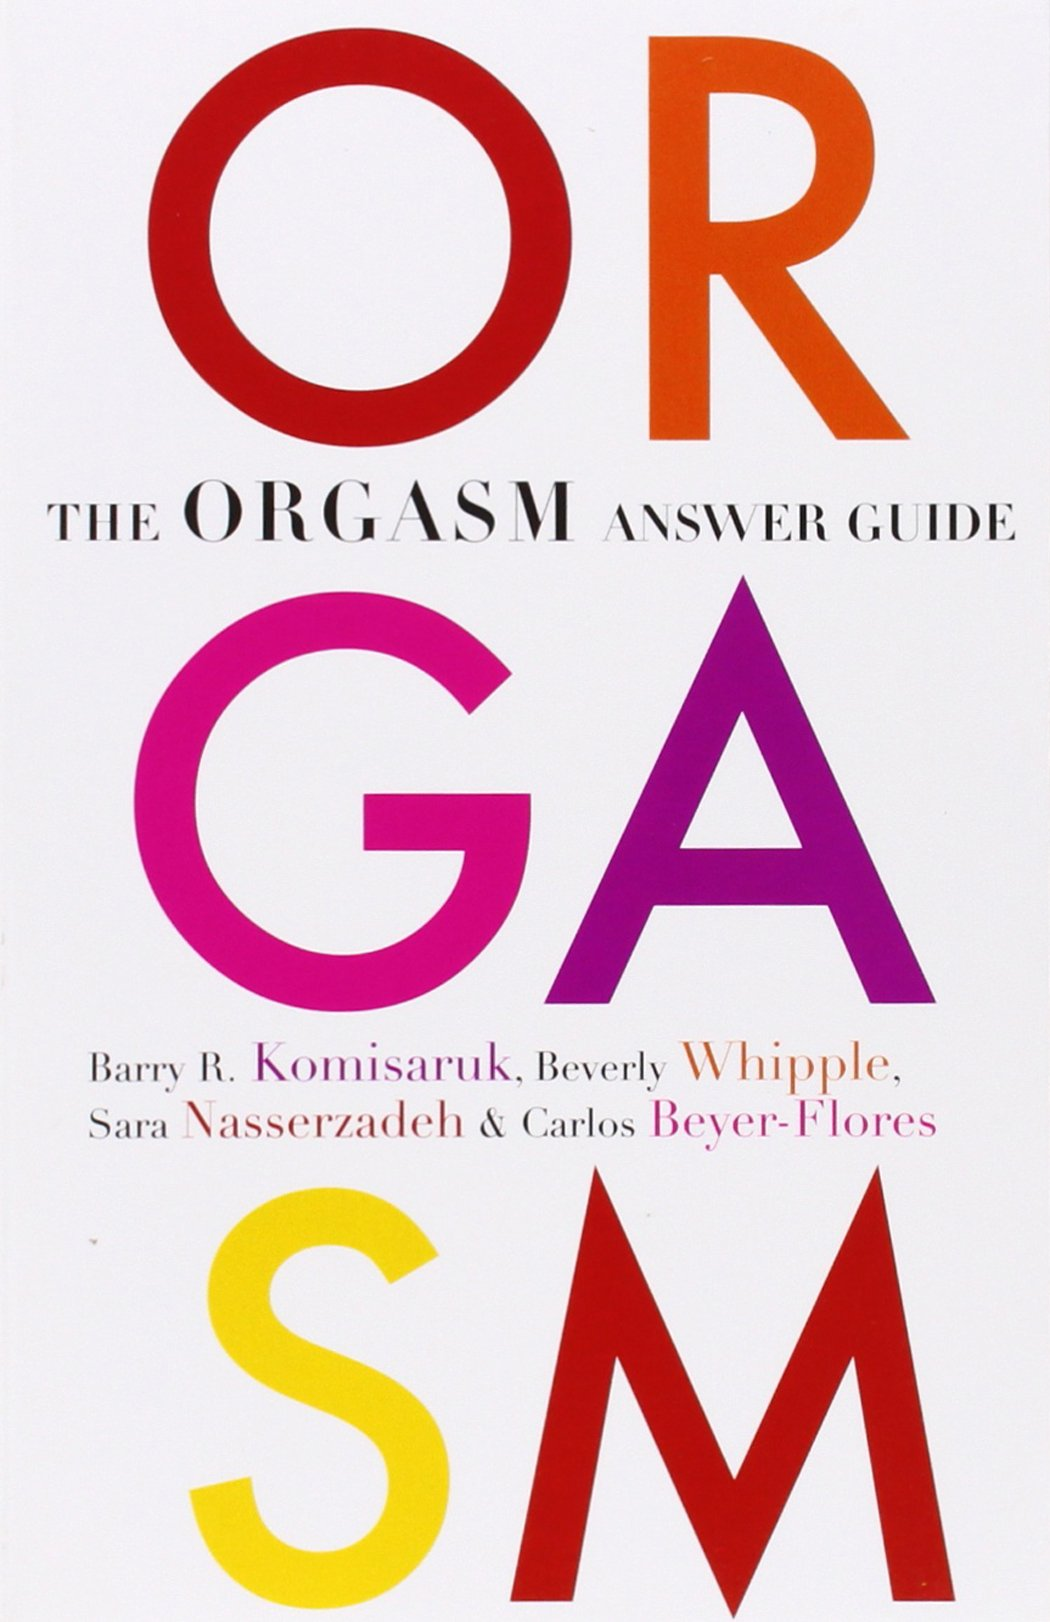 Guide to having an orgasm opinion you